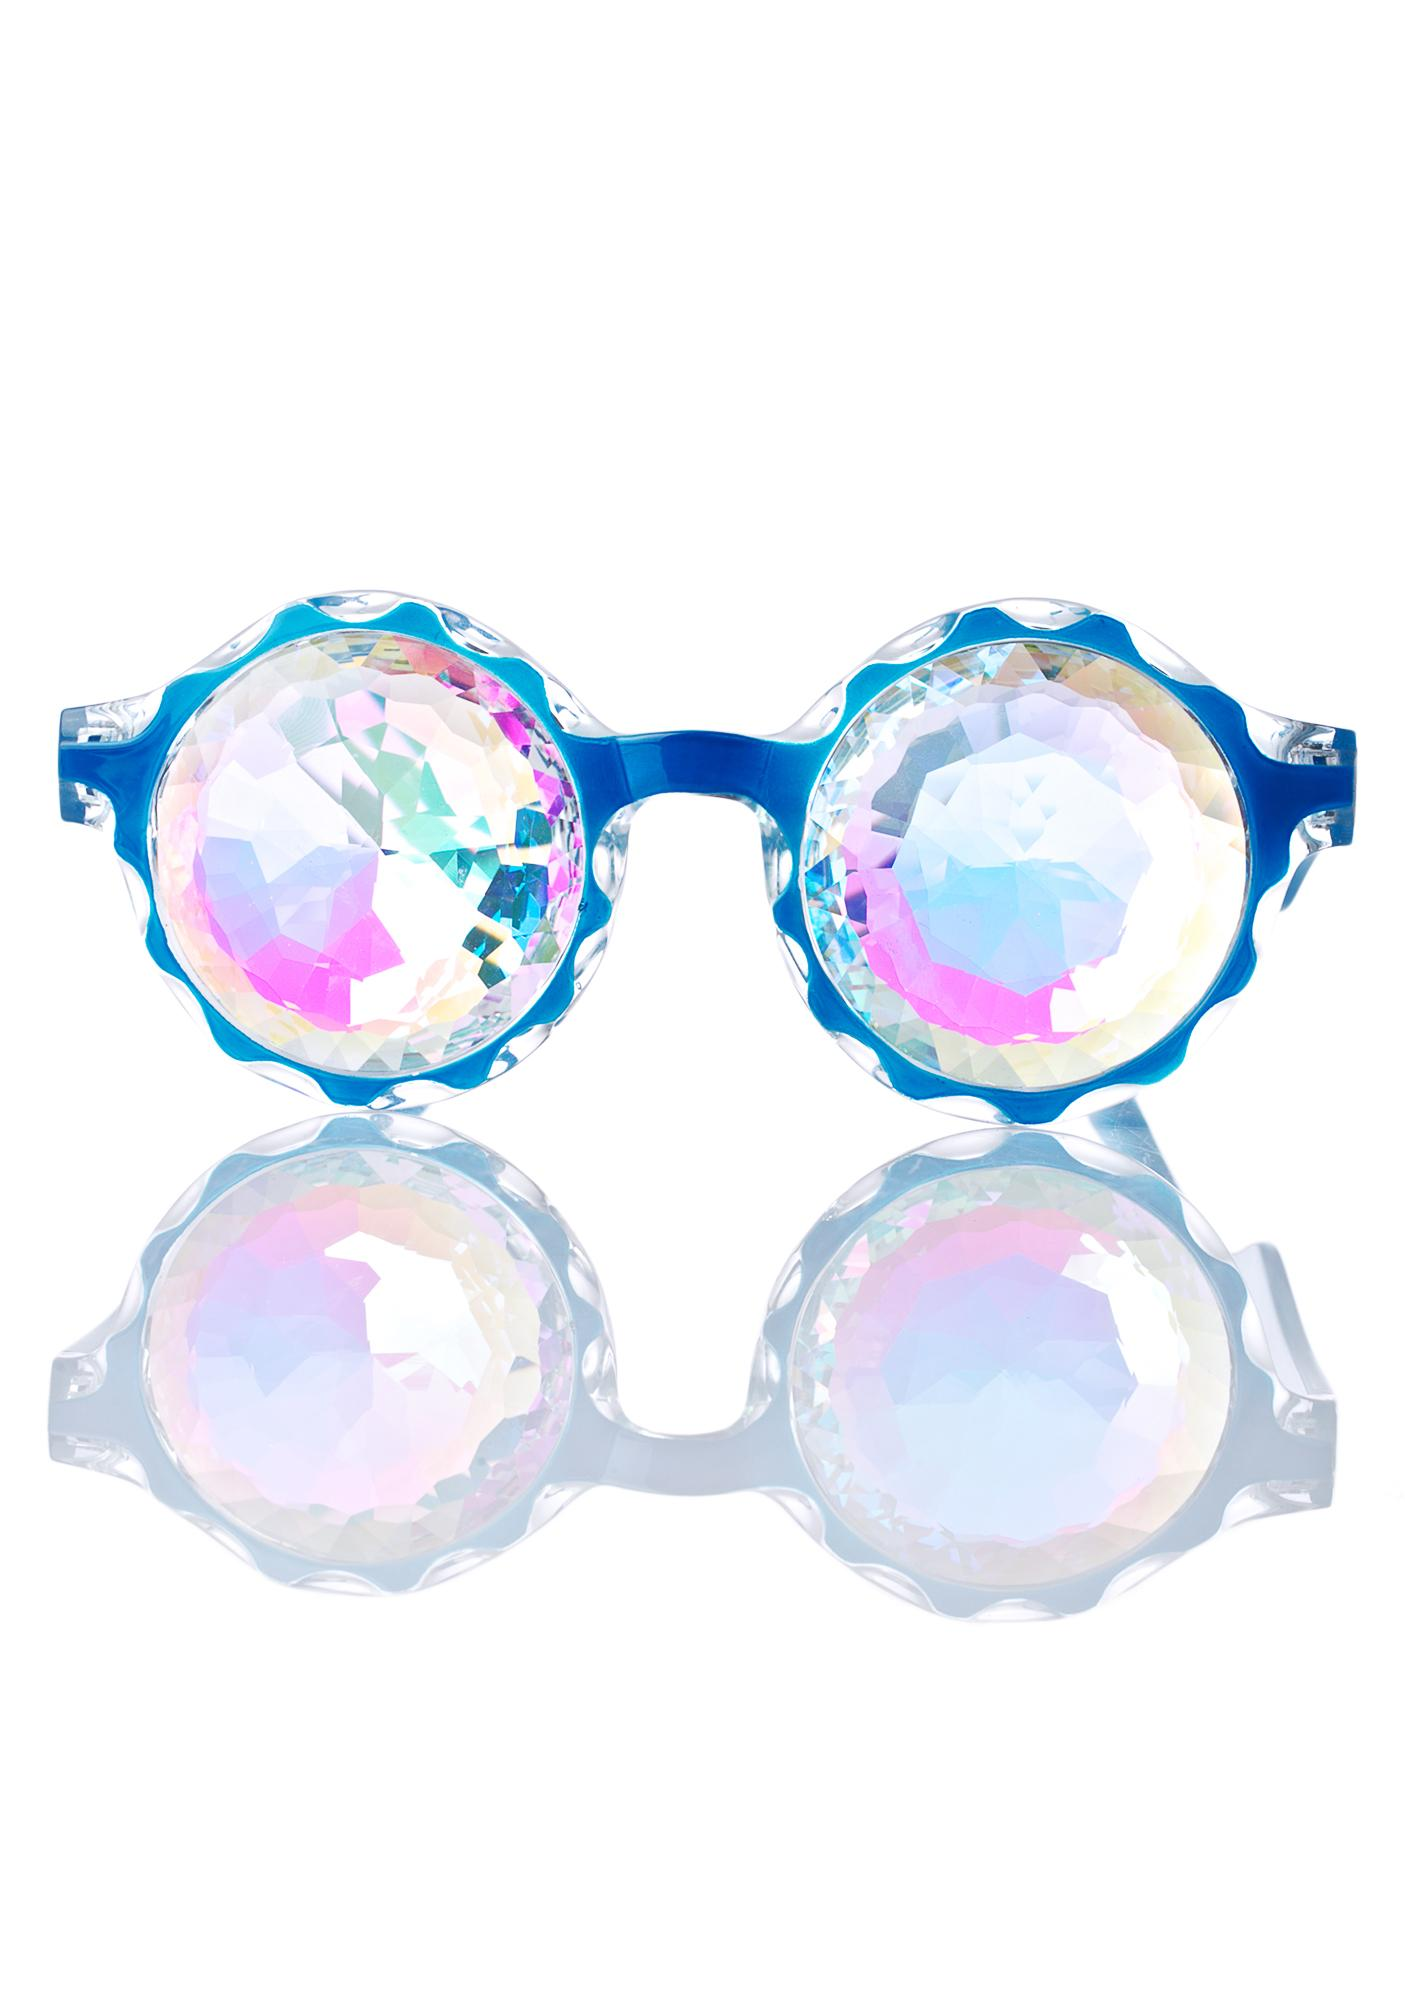 GloFX Crown Blue Kaleidoscope Glasses